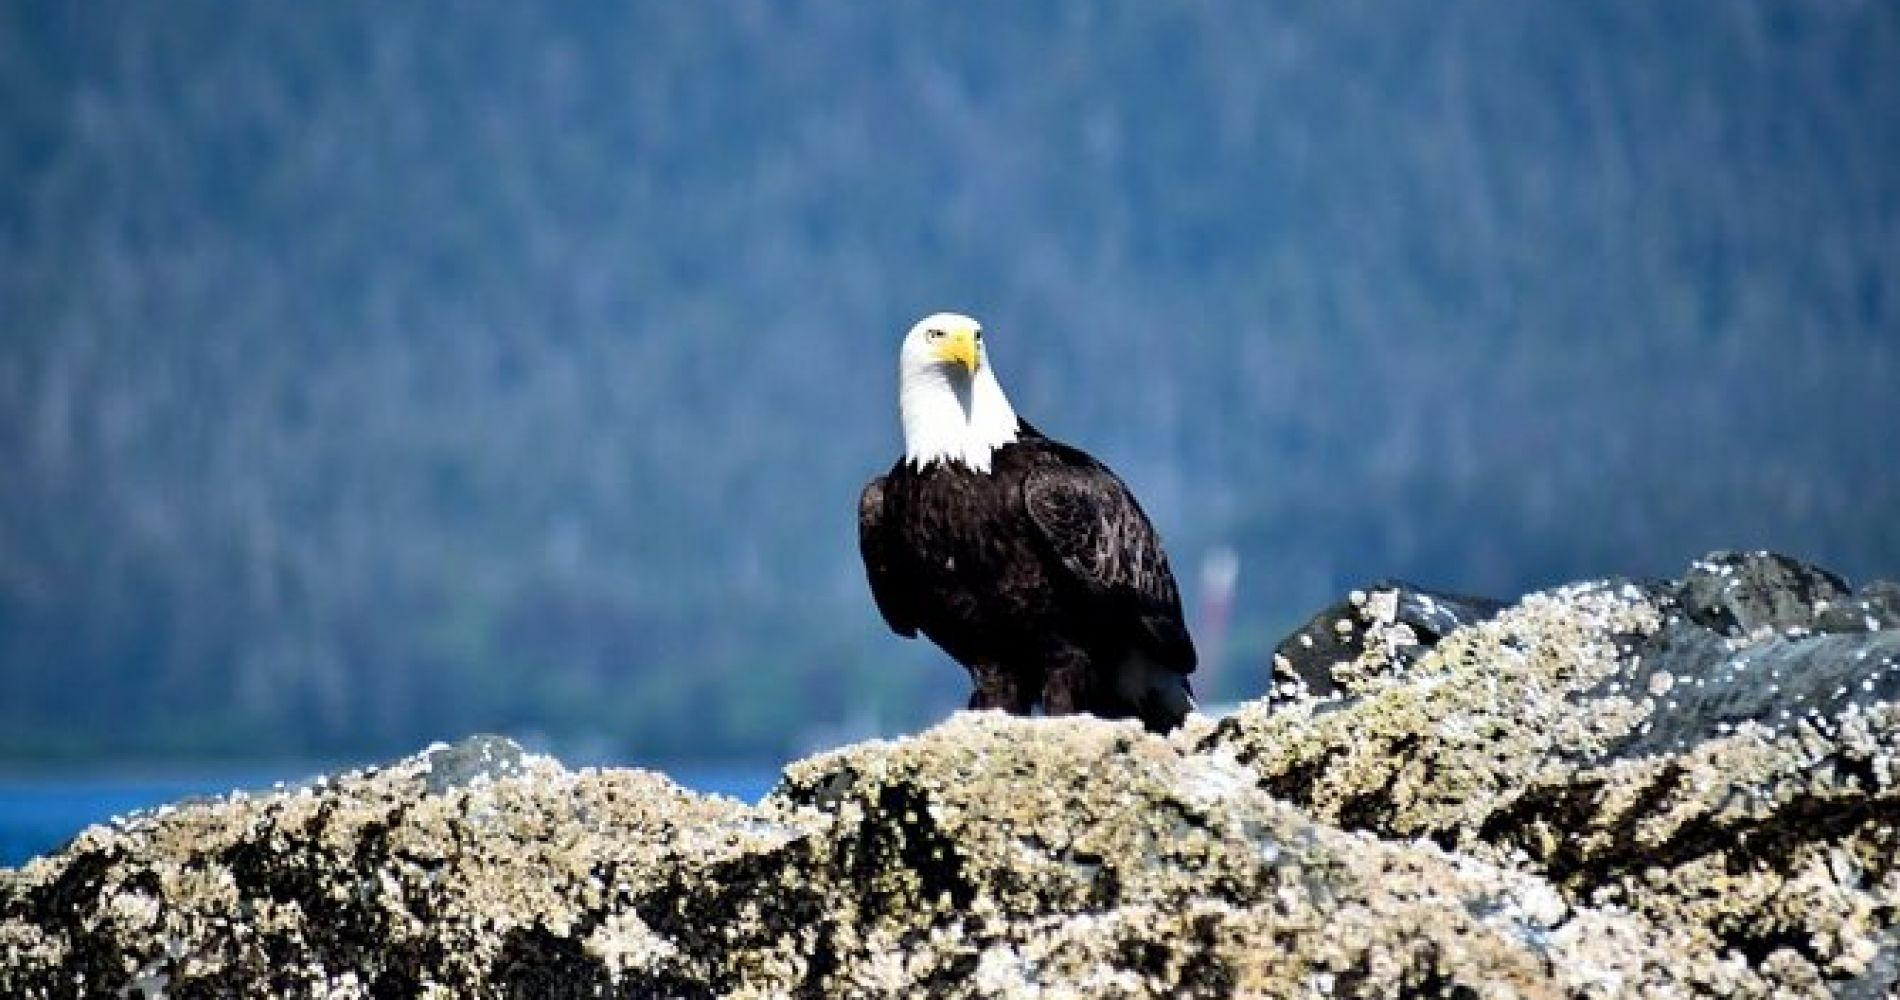 Simply Amazing Sitka Tour: Fortress of the Bear, Alaska Raptor, & Totems